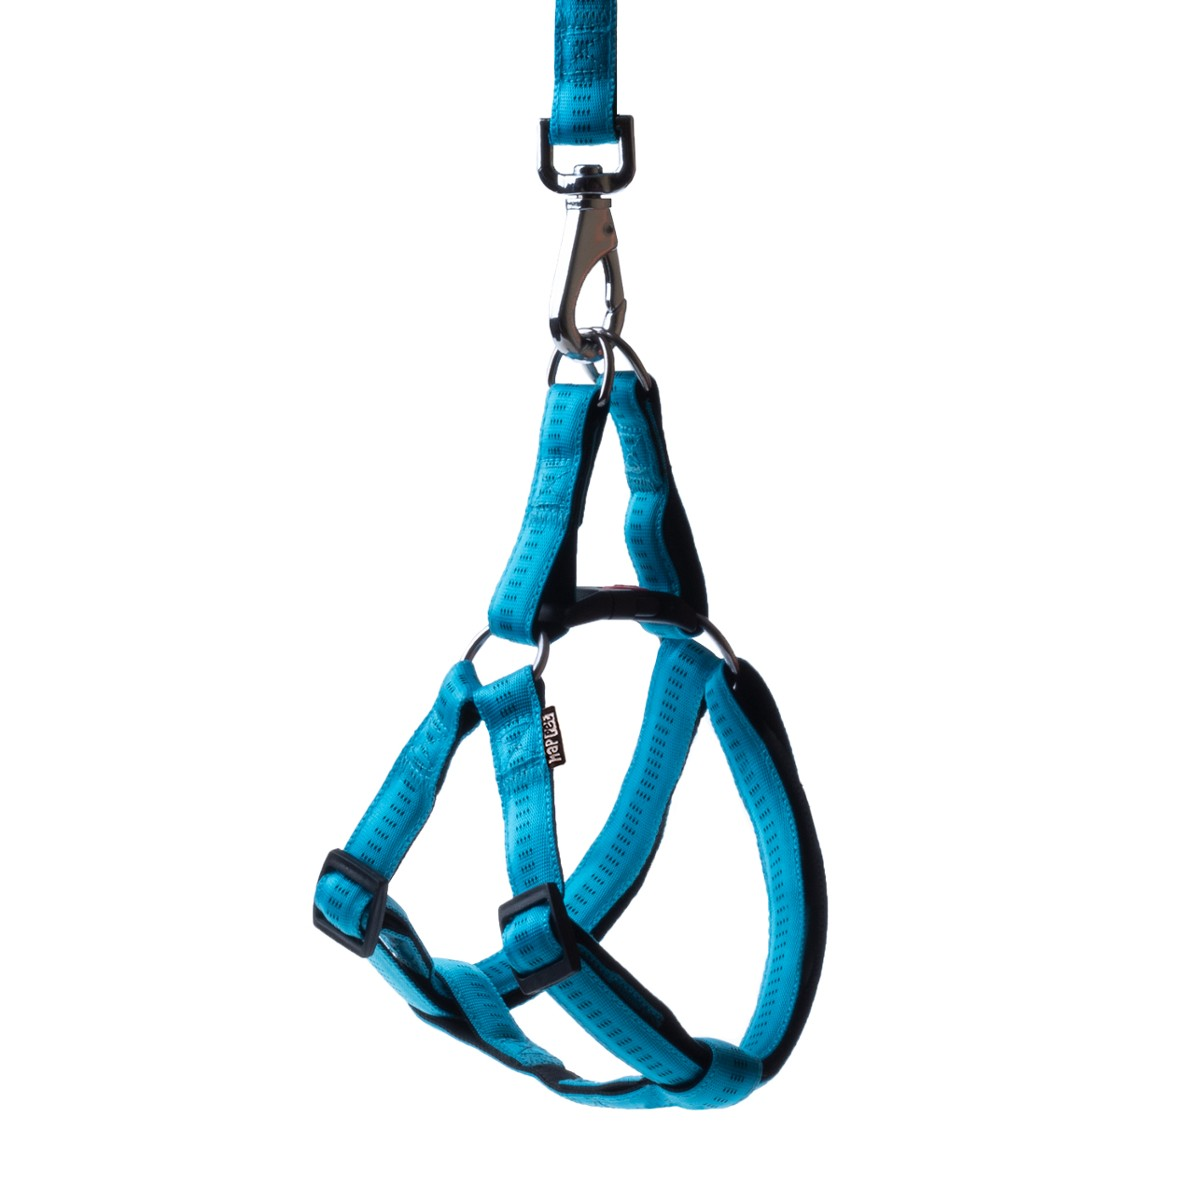 Harness S / Soft Style / Turquoise - Happet JN31